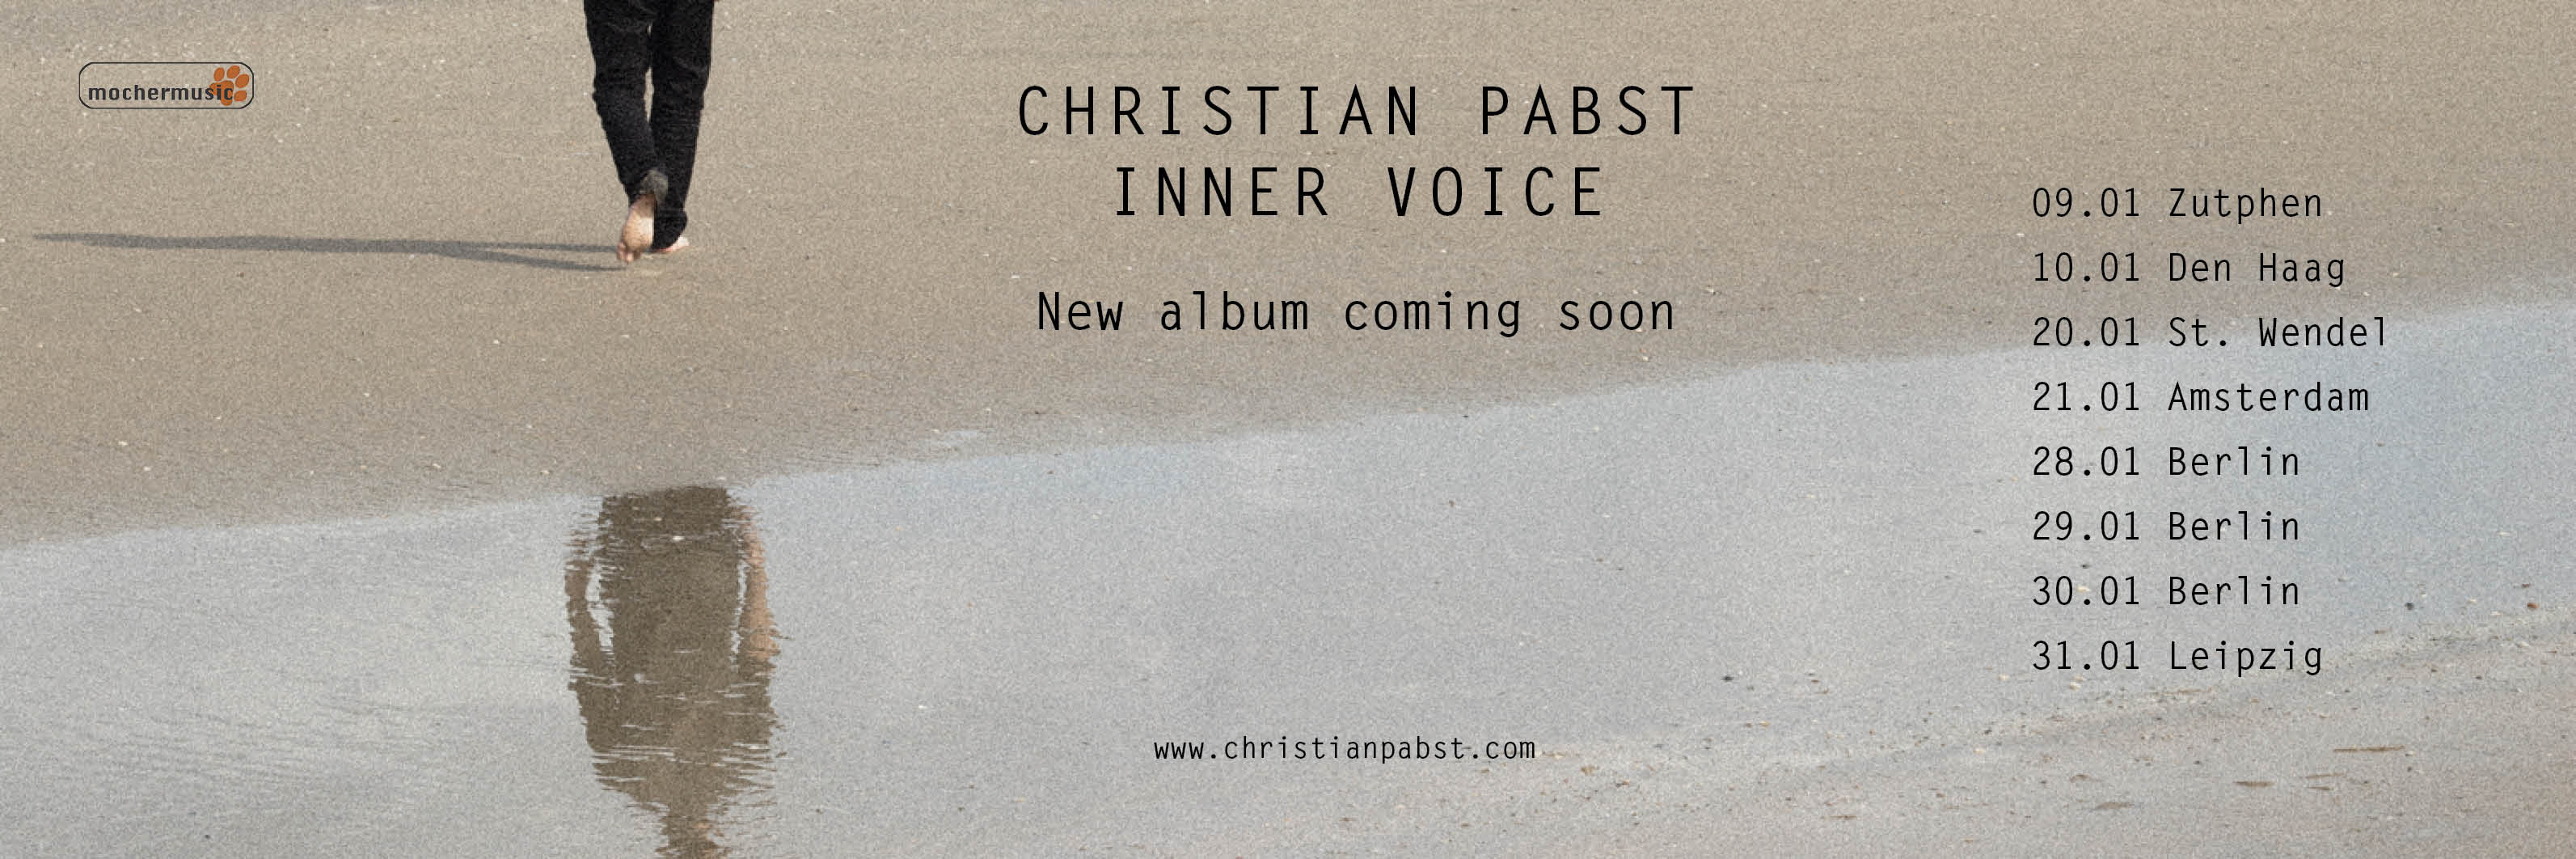 Christian Pabst Inner Voice Tour 2018